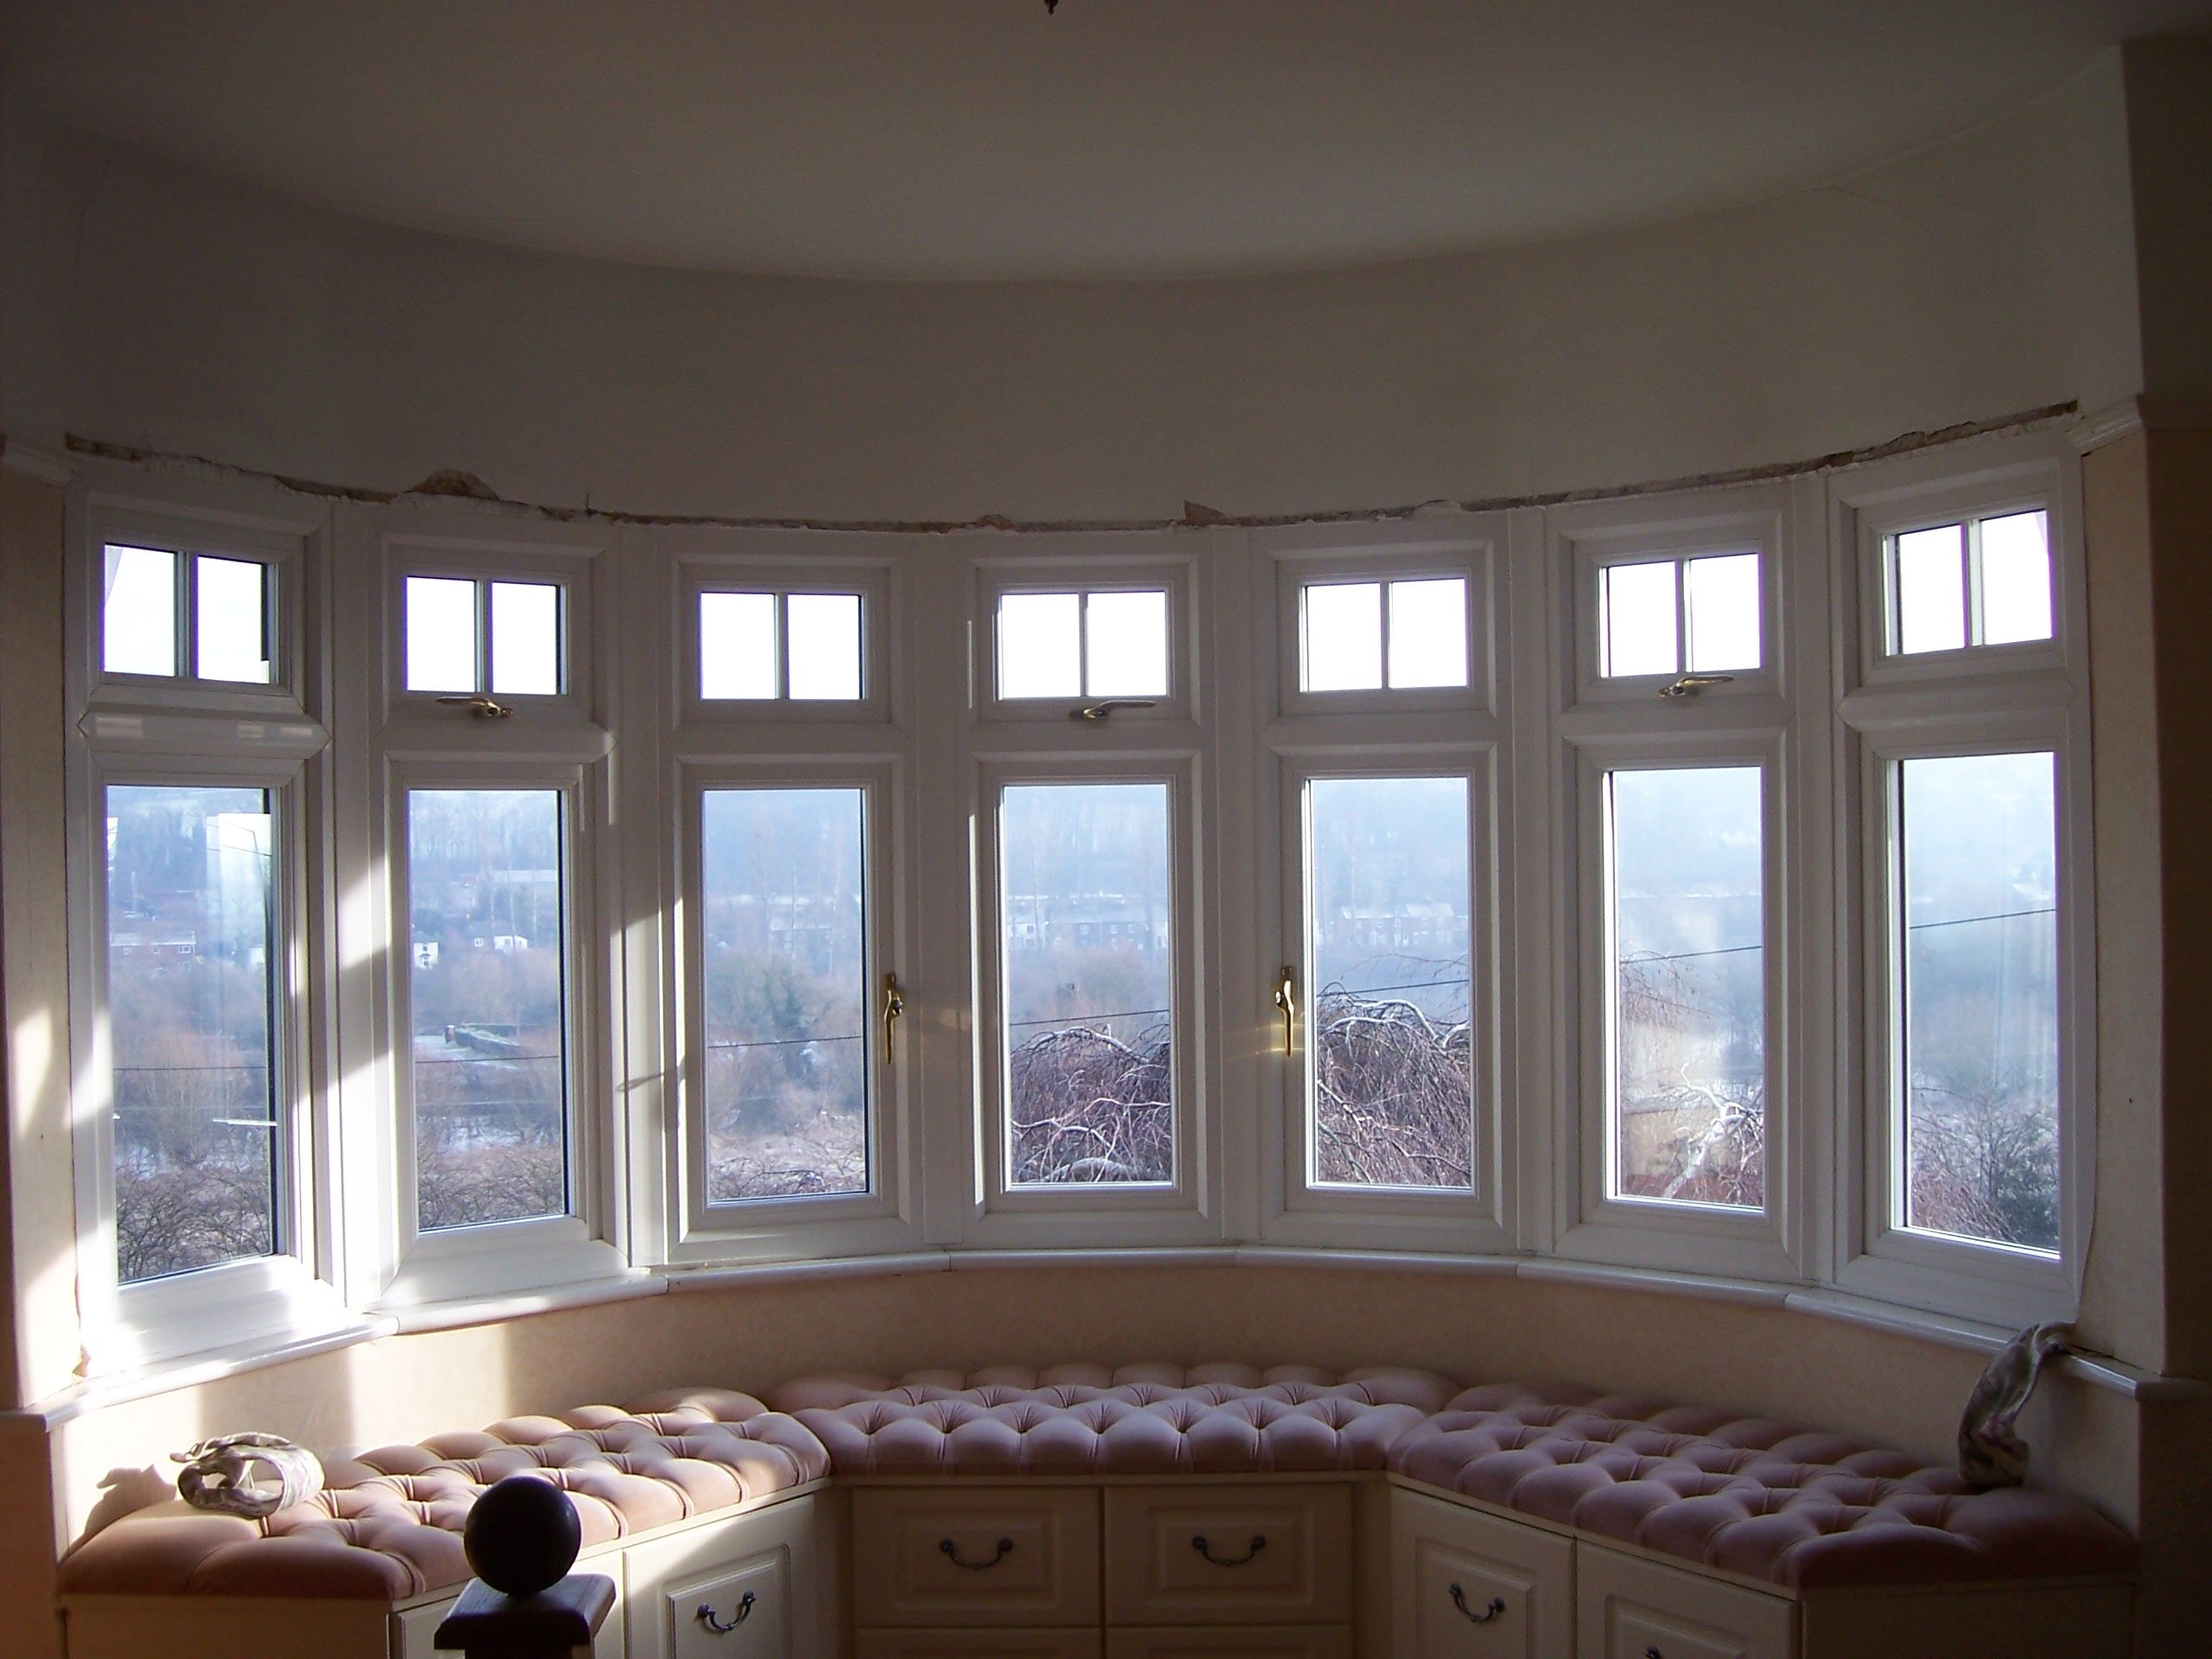 7 Segment PVCu Bay Window with Authentic Georgian Bars at the Top & a Bay Window Seat